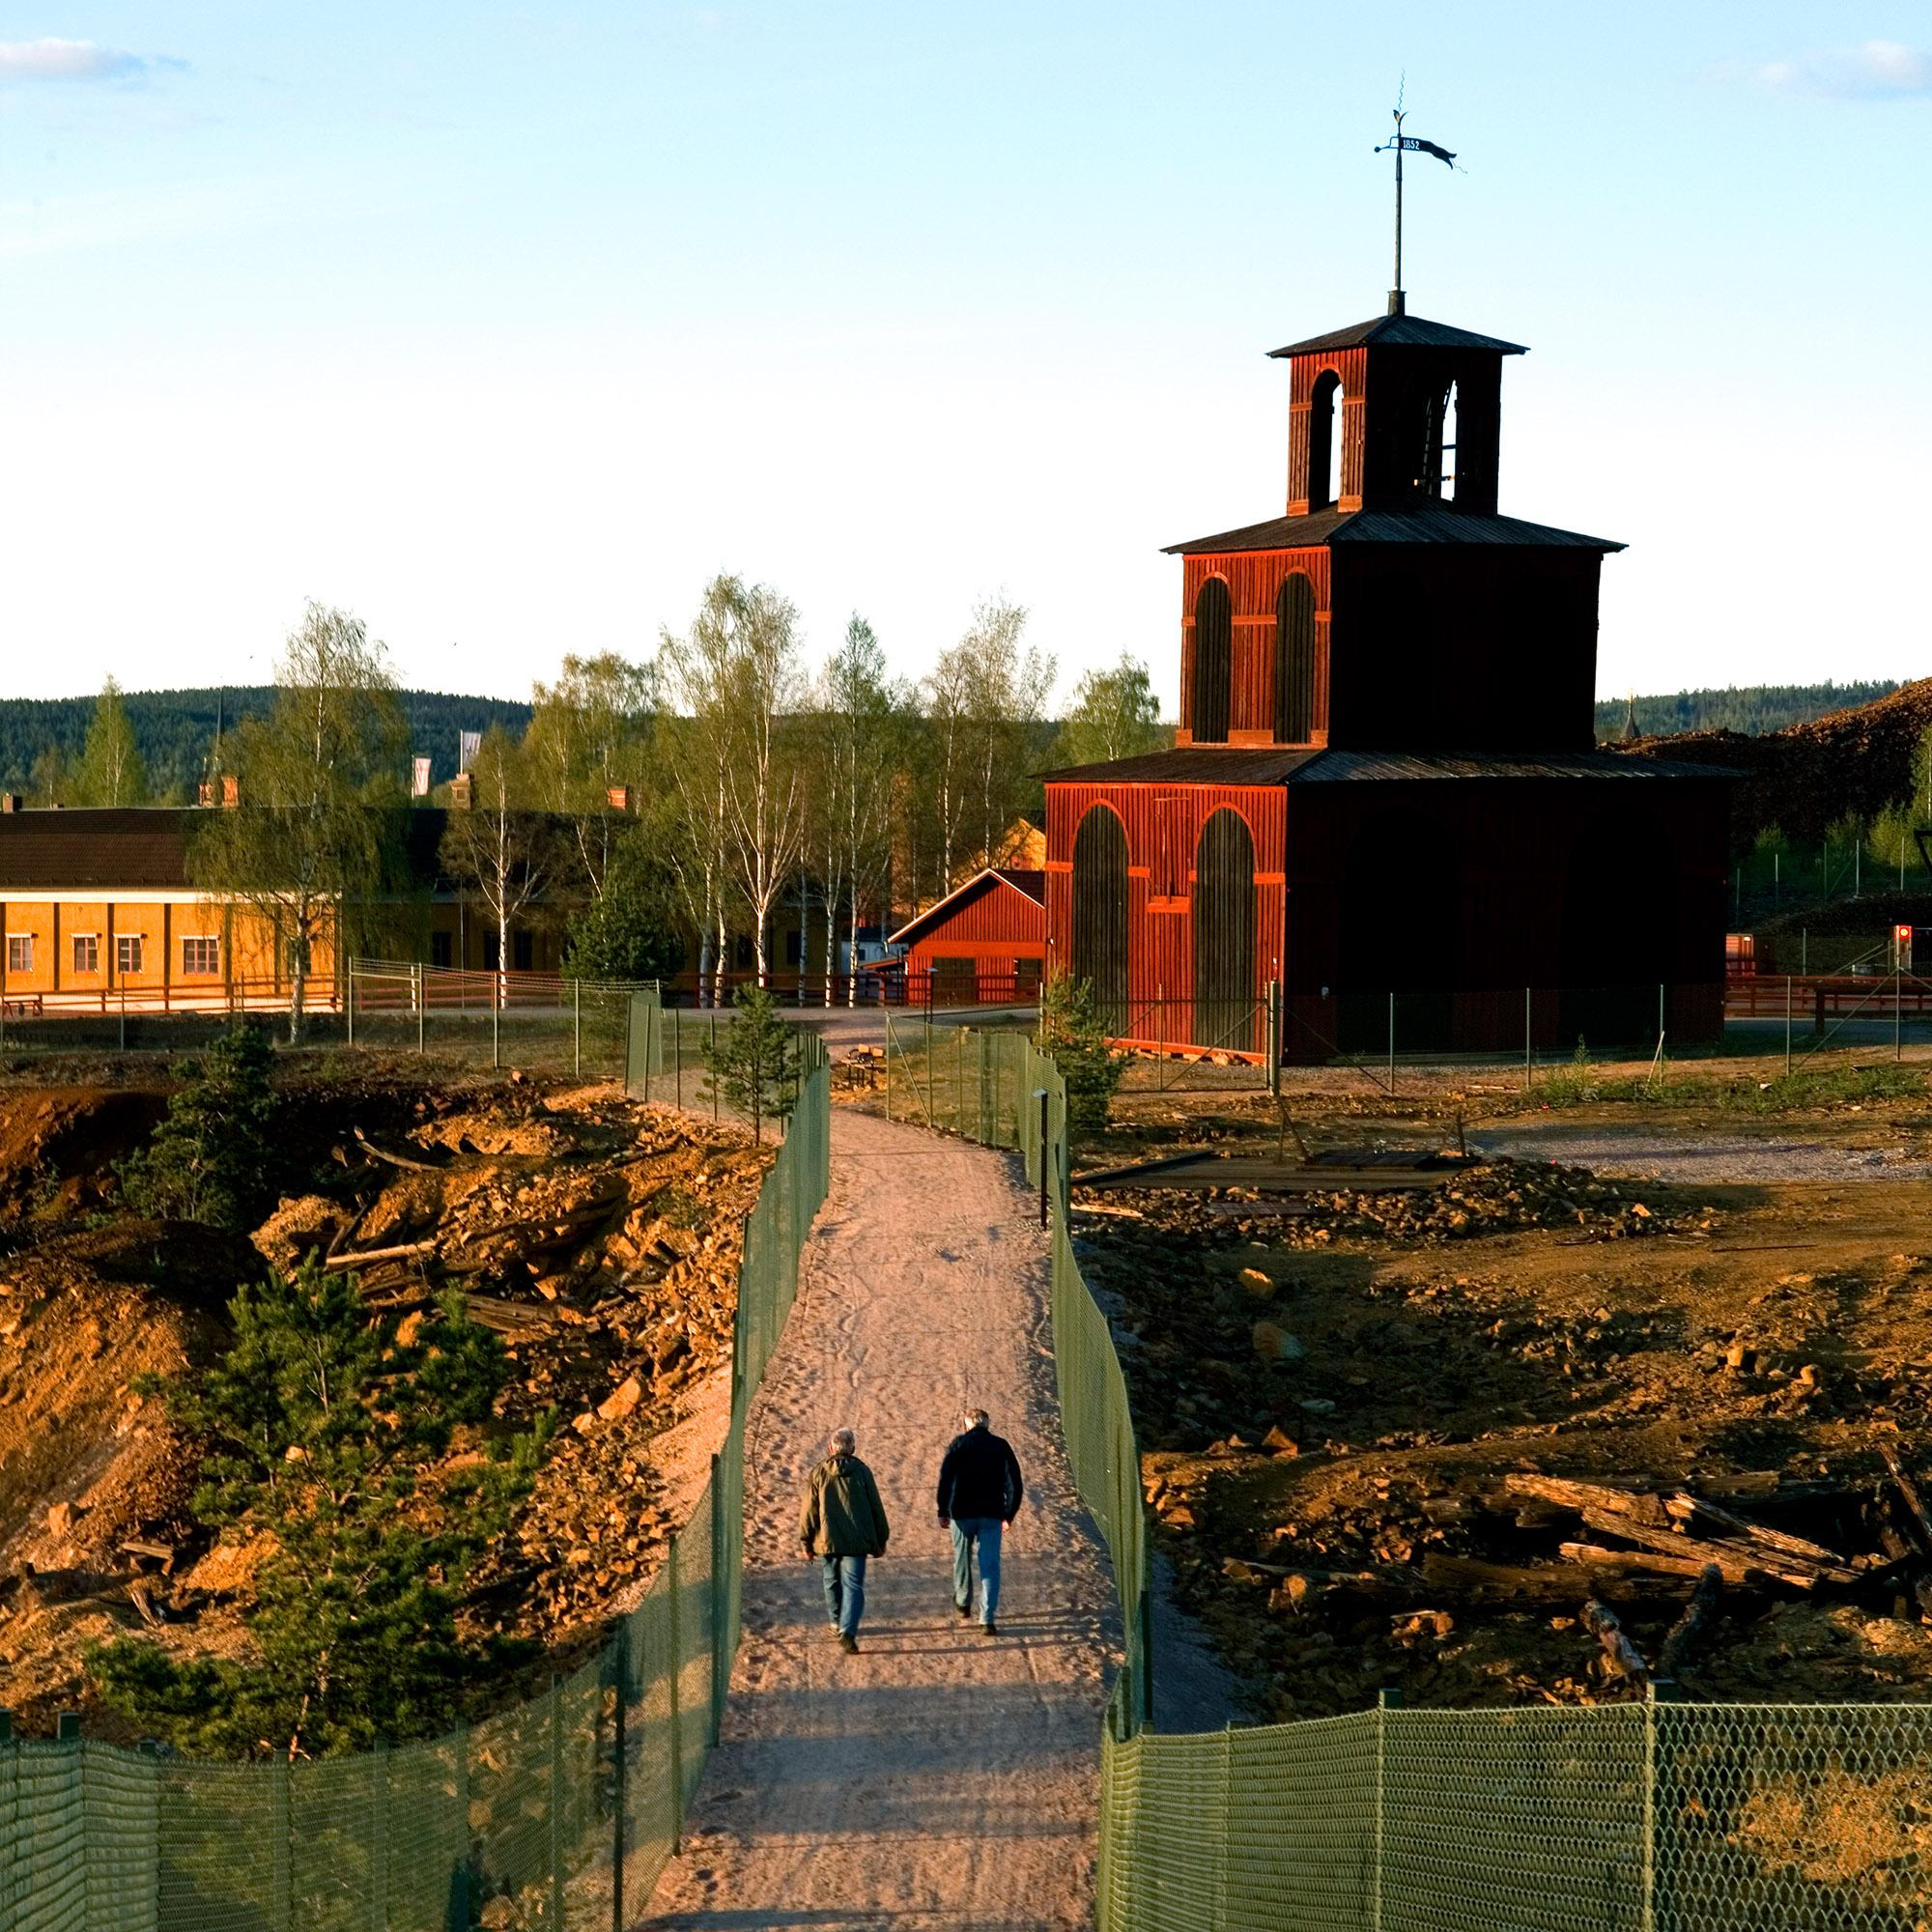 The 1.6 kilometre mine walk close to the Great Pit is landscaped to give every visitor the opportunity to experience the interesting above ground mine area. - © Birgitta Wahlberg